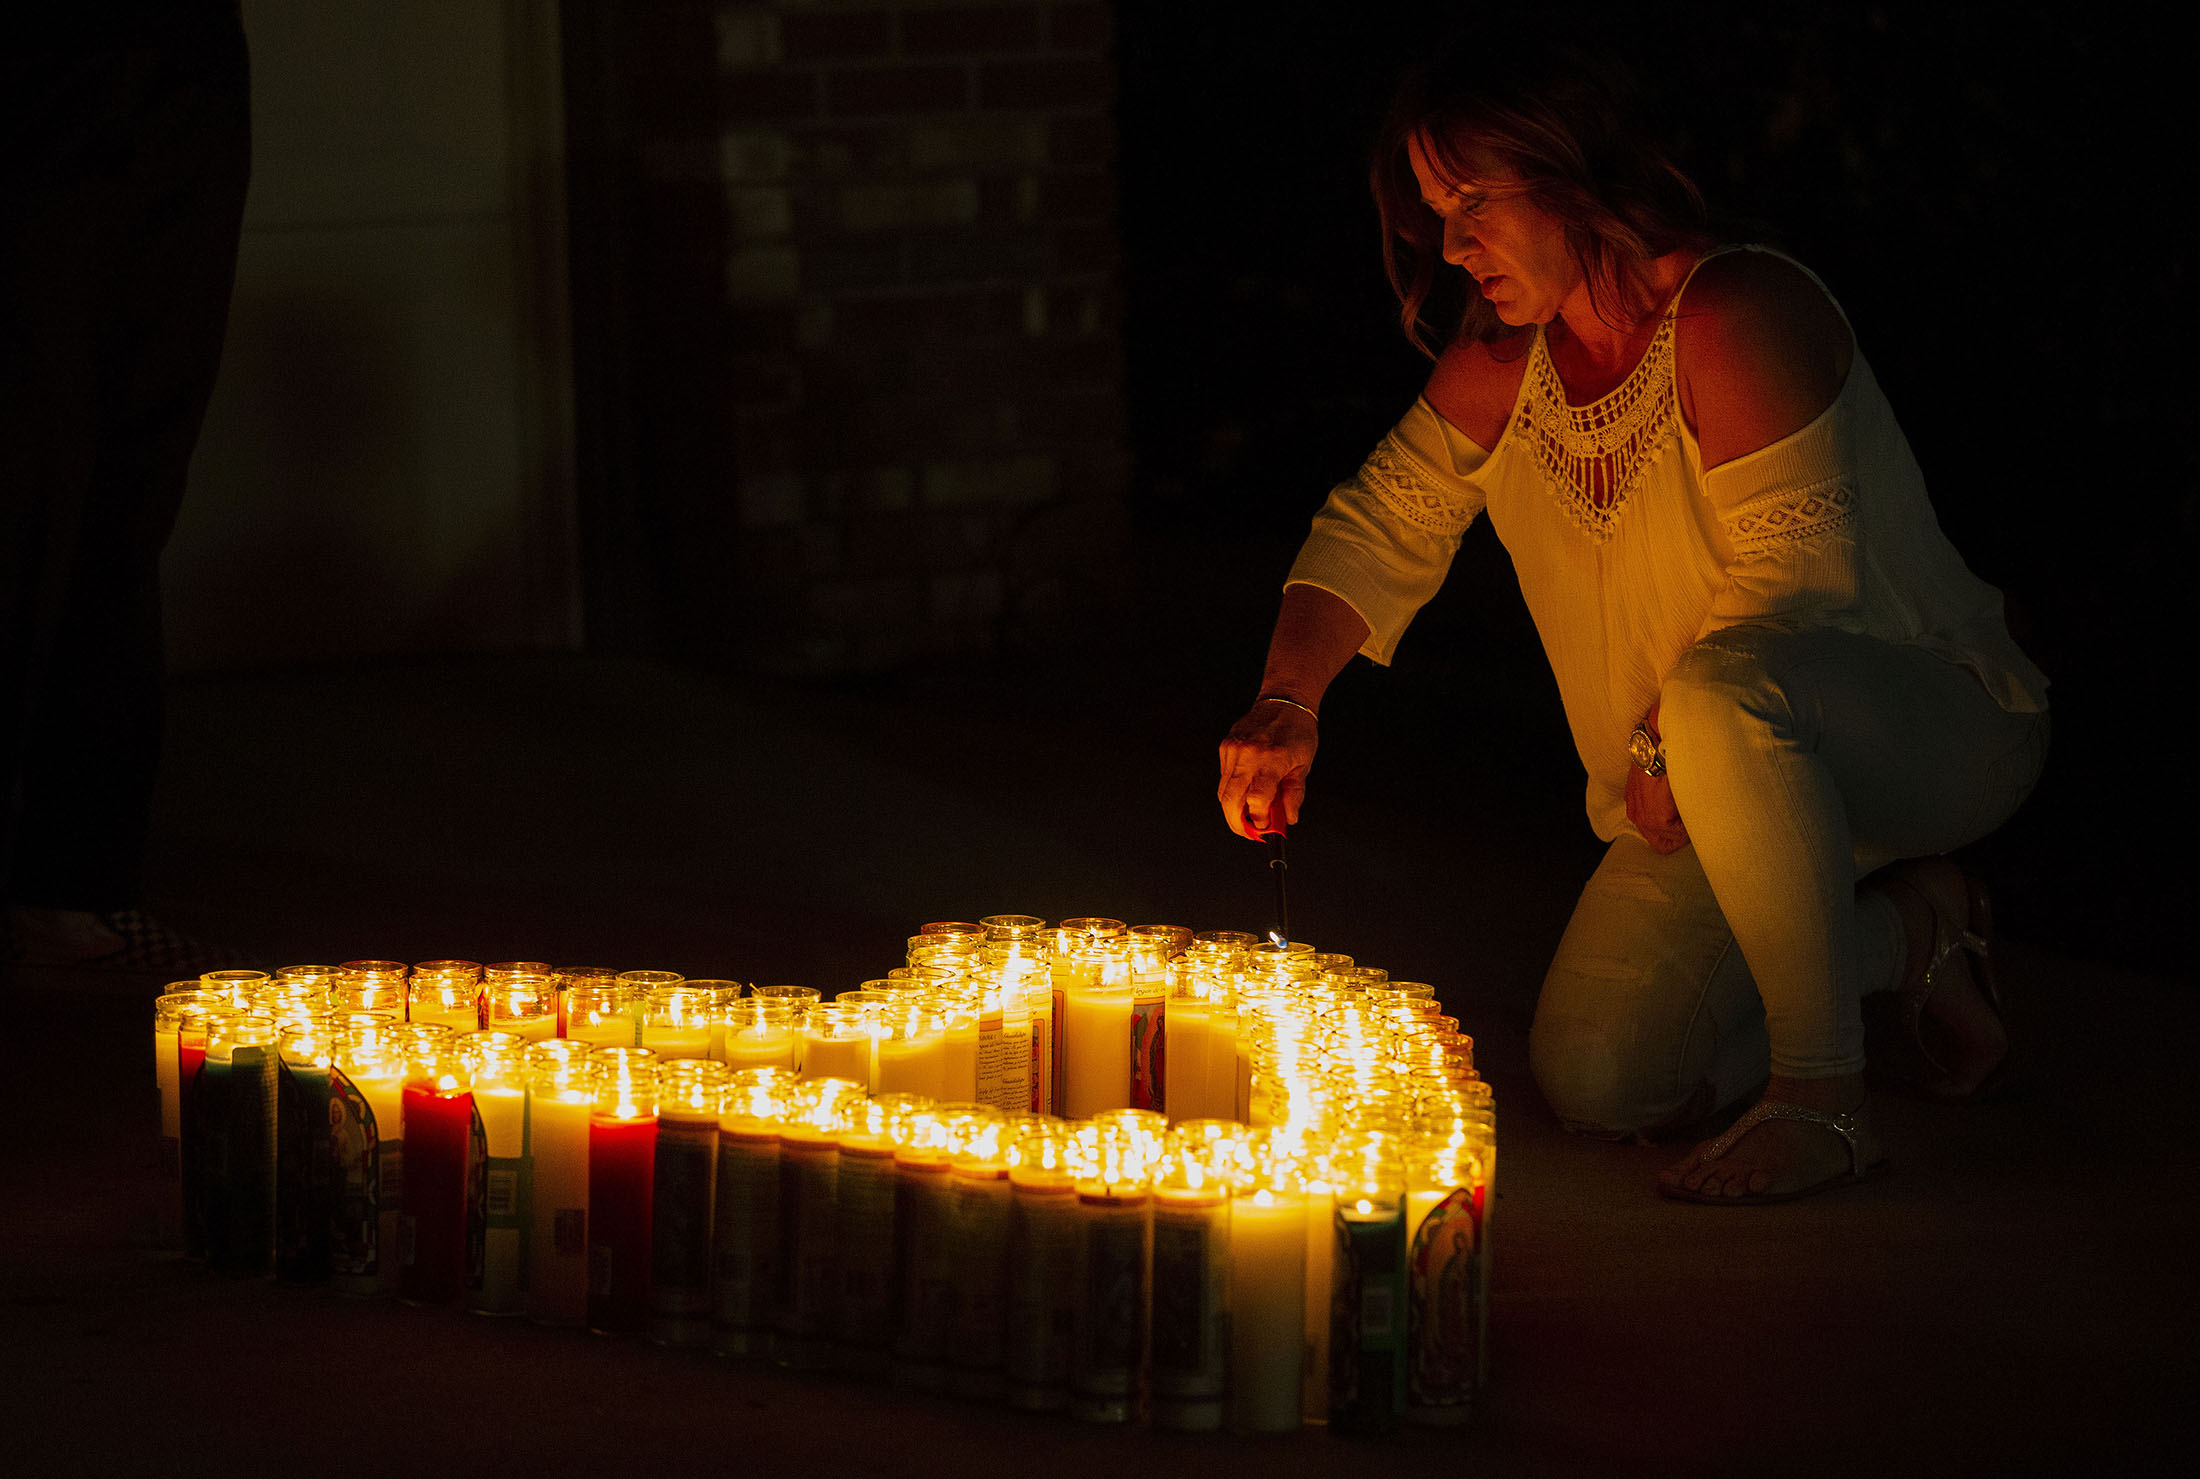 A woman lights candles in the shape of the heart during a candlelight vigil for Leslie Pray, 54, who was killed Saturday while riding her bike along Mills Avenue near Radcliffe Drive in Claremont on Monday, November 5, 2018.